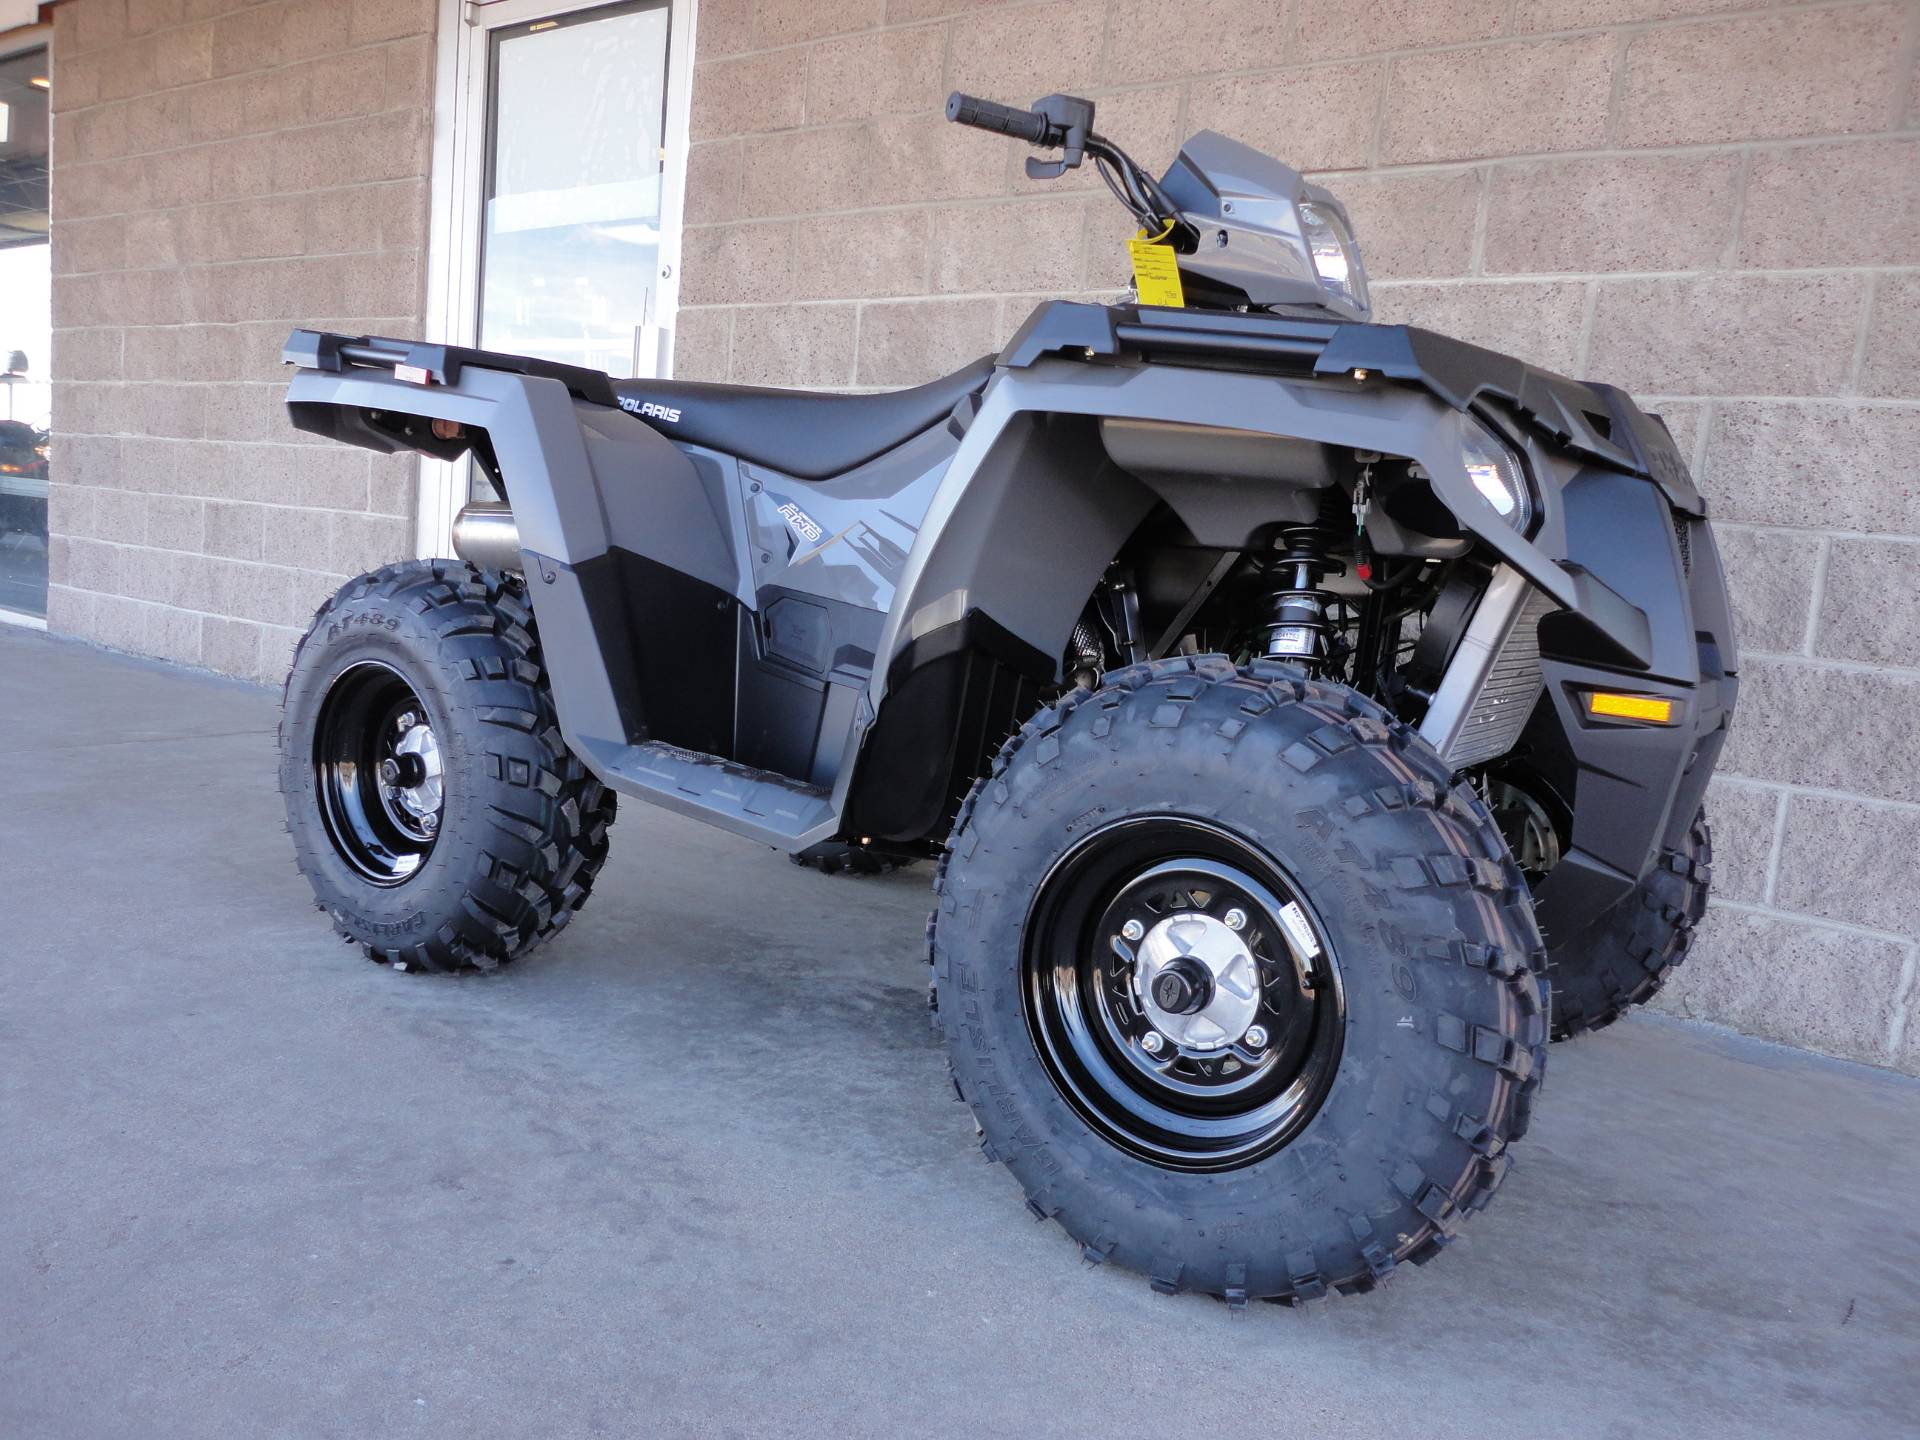 2020 Polaris Sportsman 570 in Denver, Colorado - Photo 22